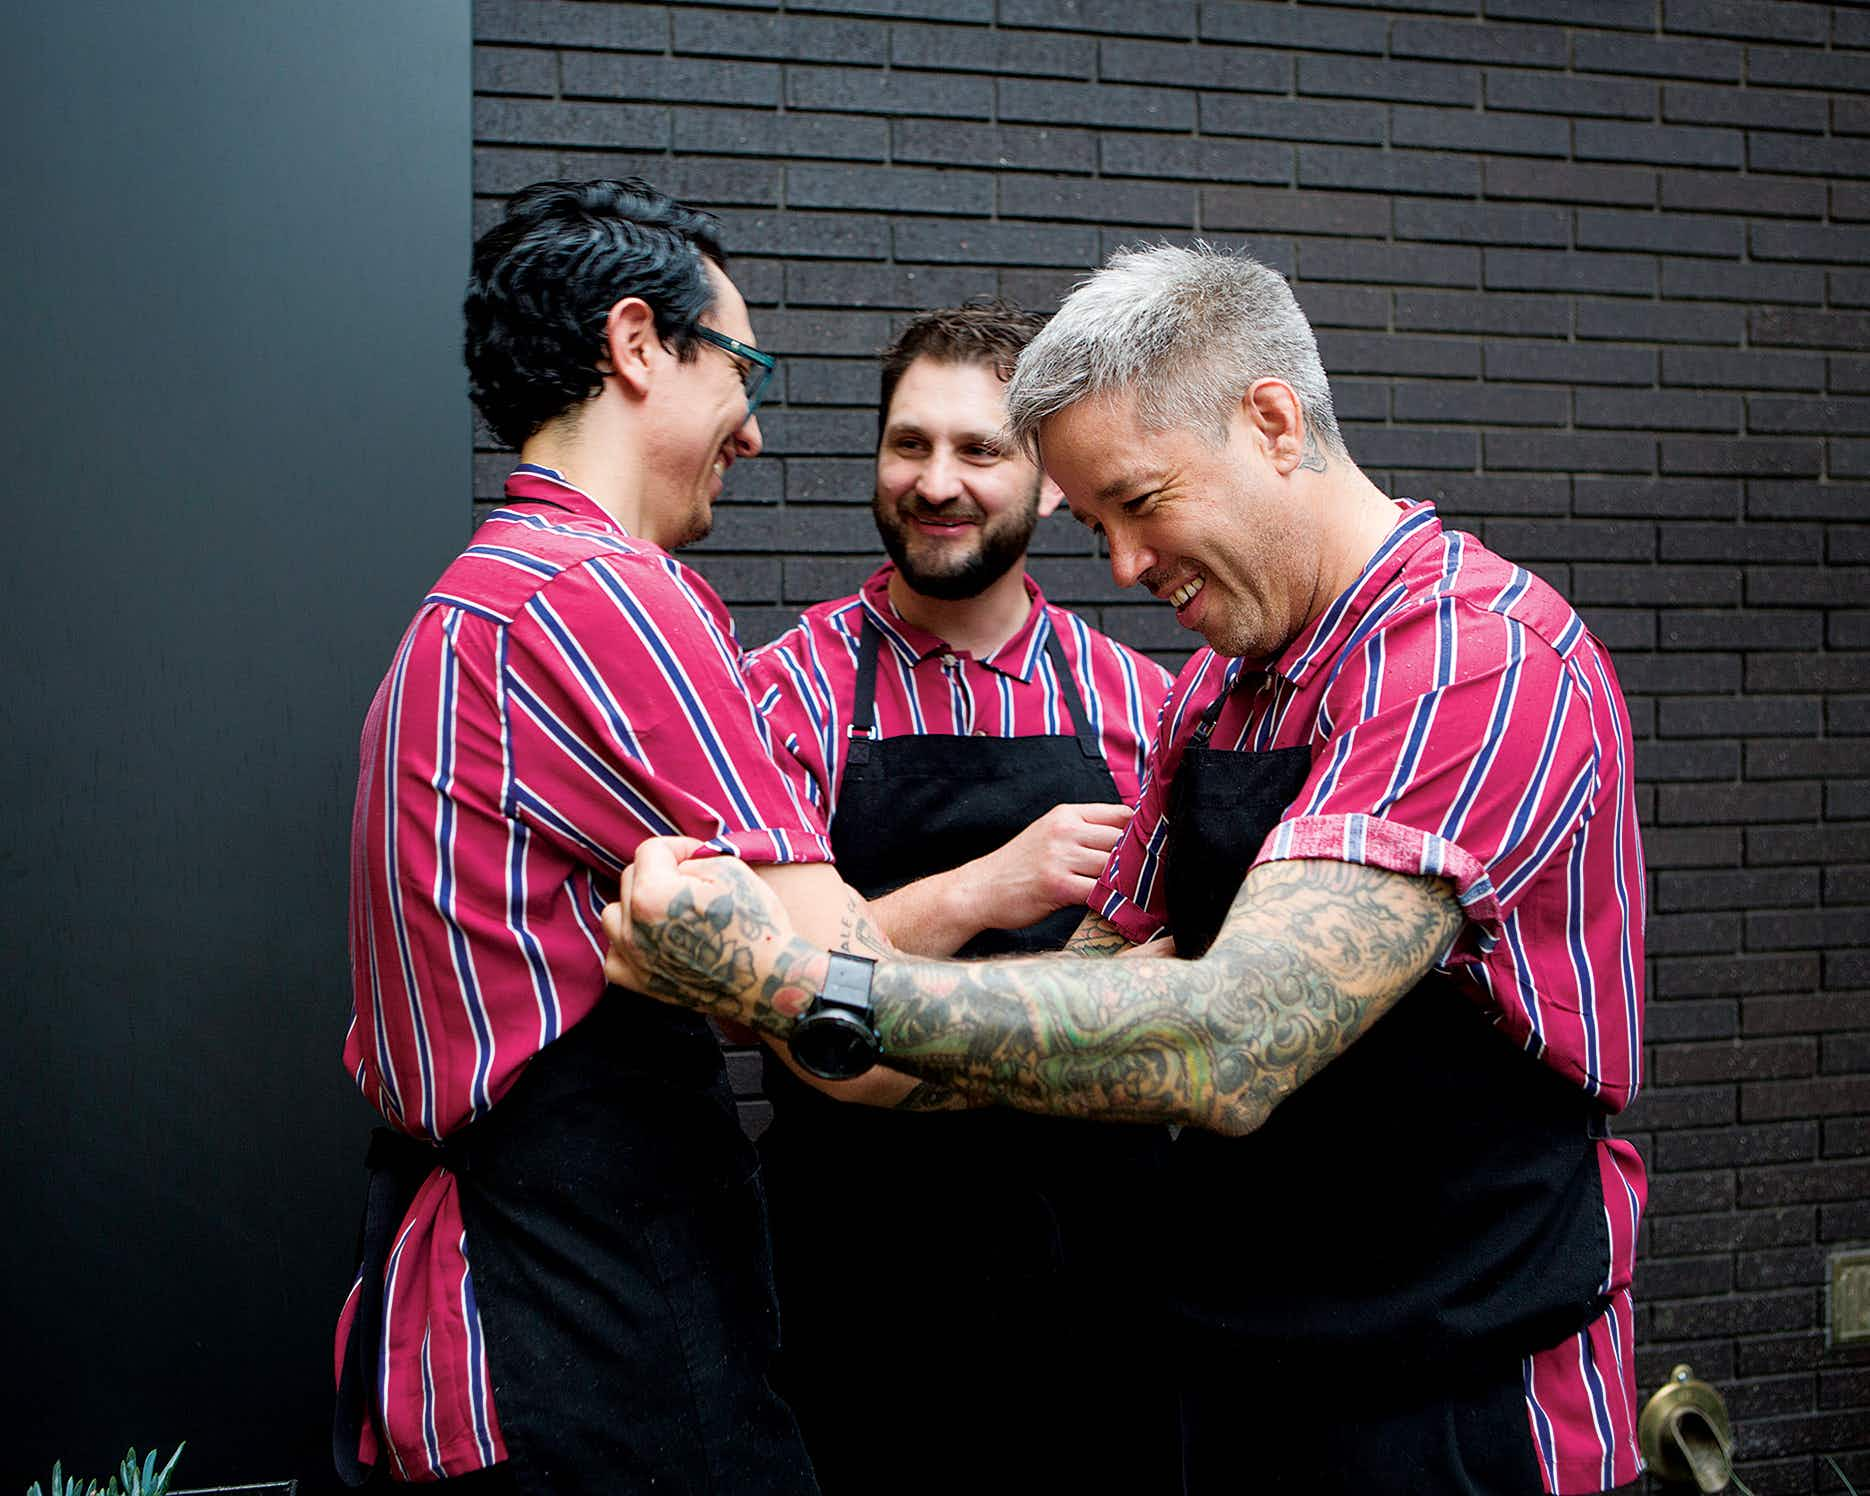 Chefs Alan Delgado, Gabe Erales, and Philip Speer at Comedor.